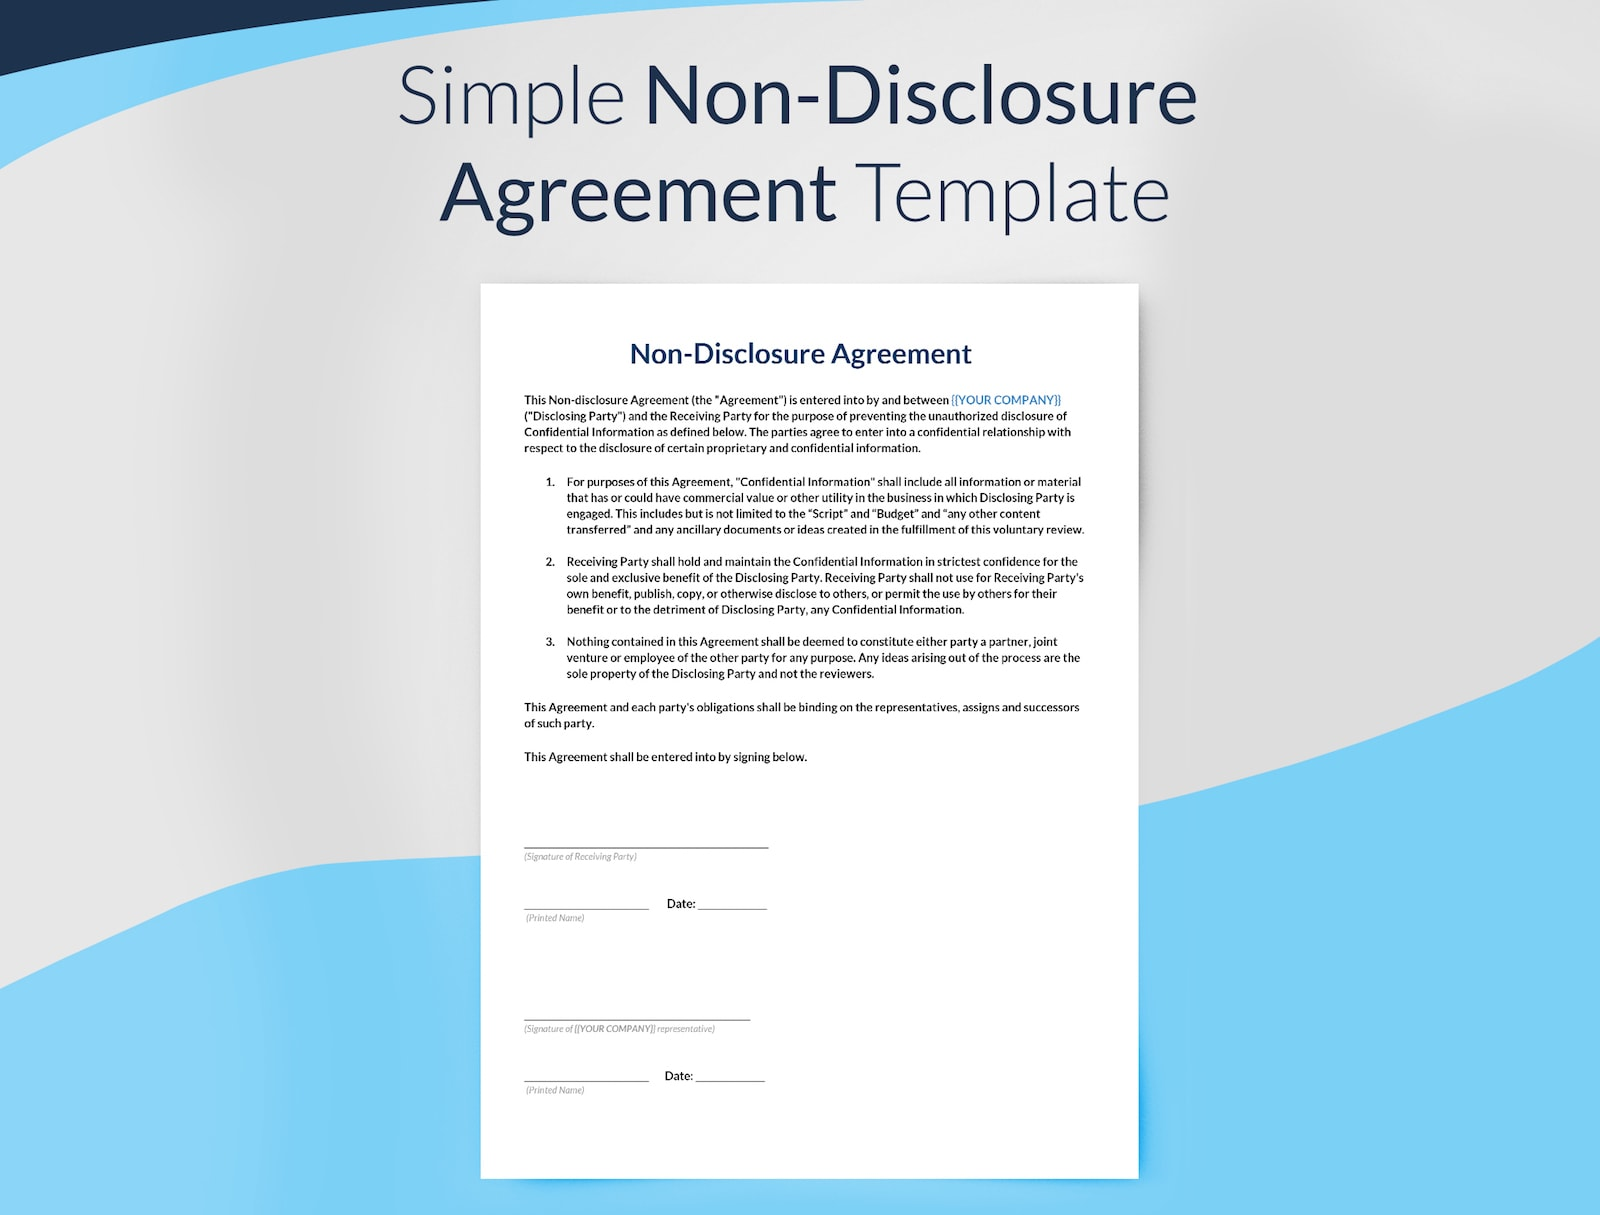 Non Disclosure Agreement Template Preview - Film Production Templates  - Free Downloads -